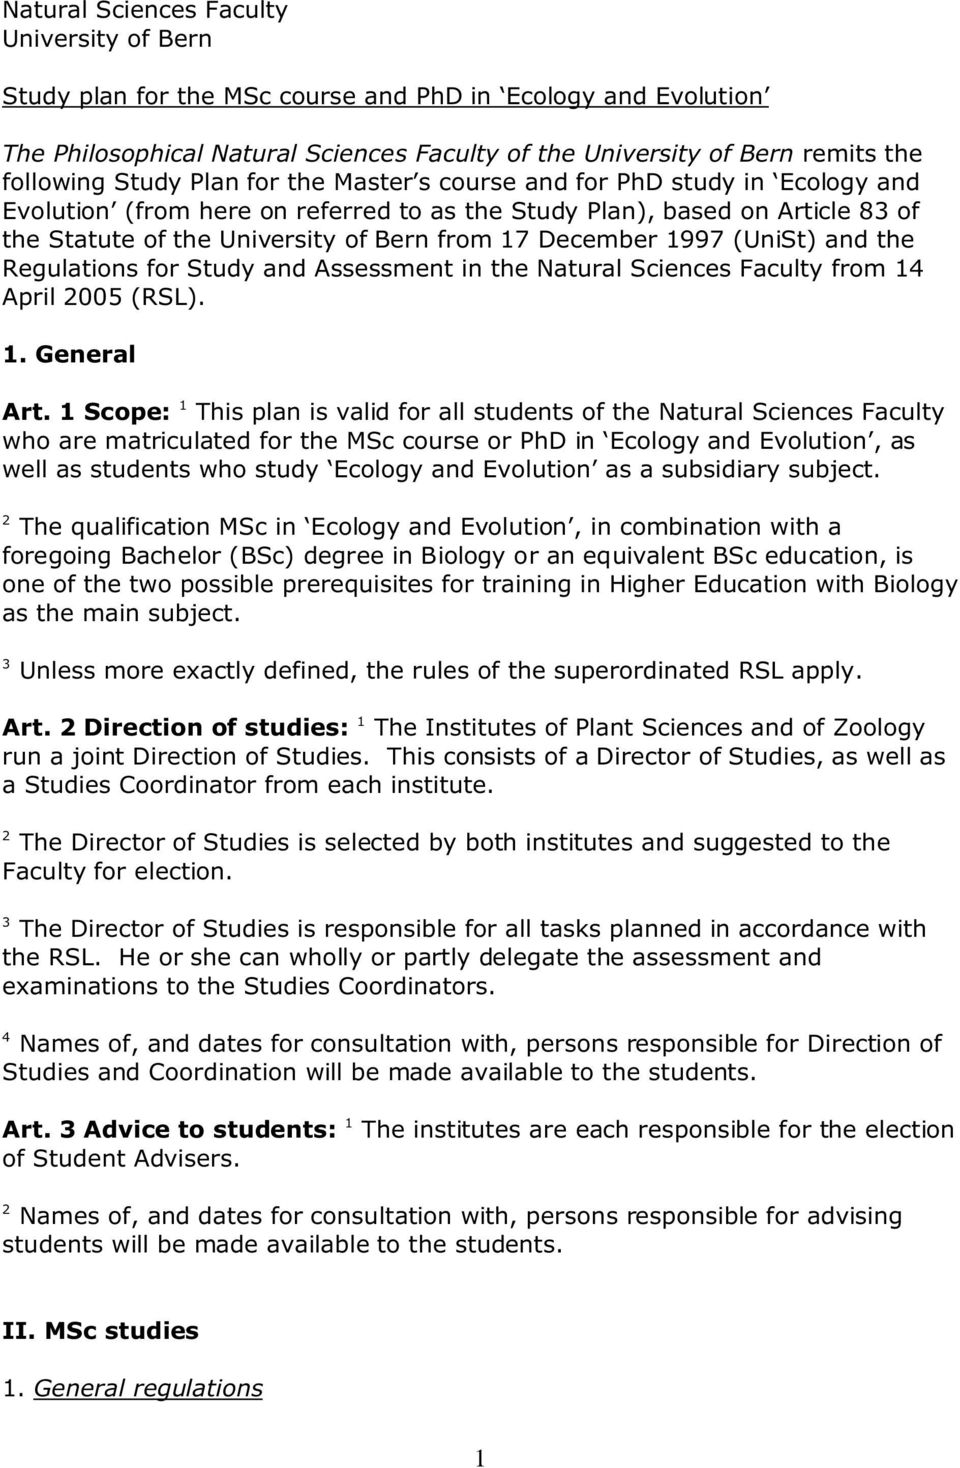 December 1997 (UniSt) and the Regulations for Study and Assessment in the Natural Sciences Faculty from 1 April 005 (RSL). 1. General Art.